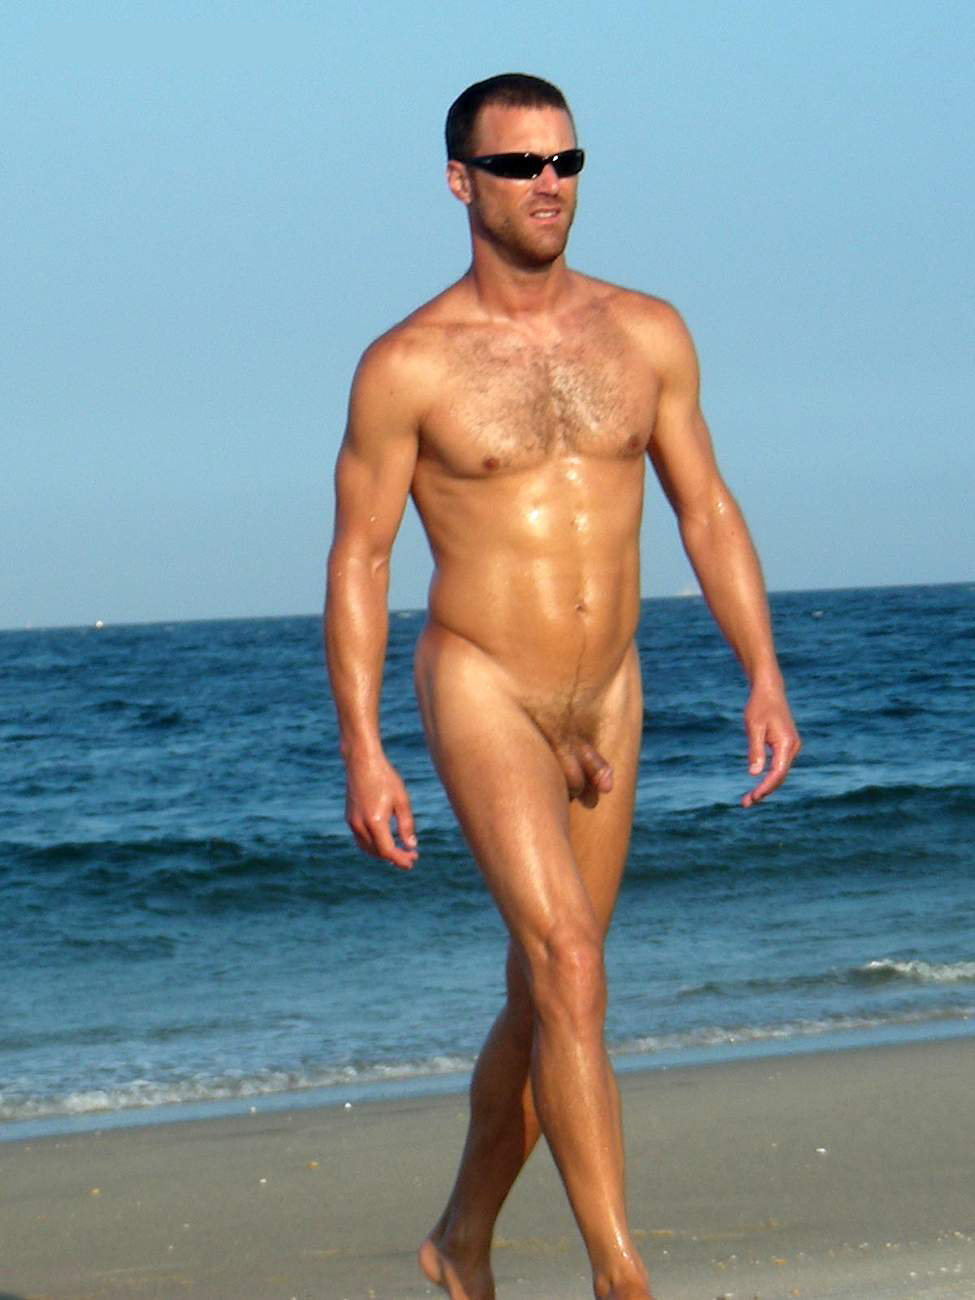 from Tristen naked guy on the beach